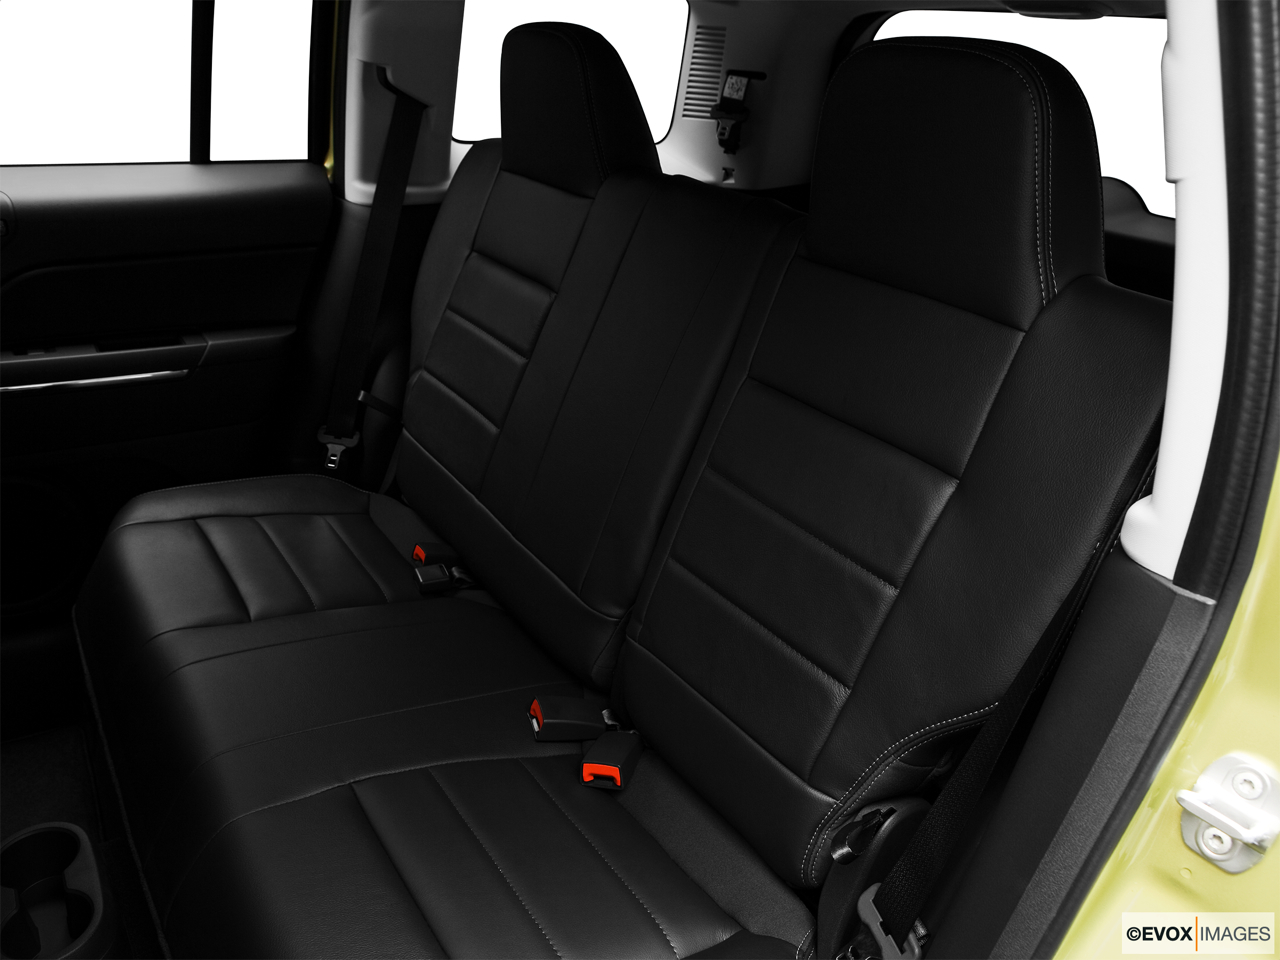 2010 Jeep Patriot Limited Rear seats from Drivers Side.